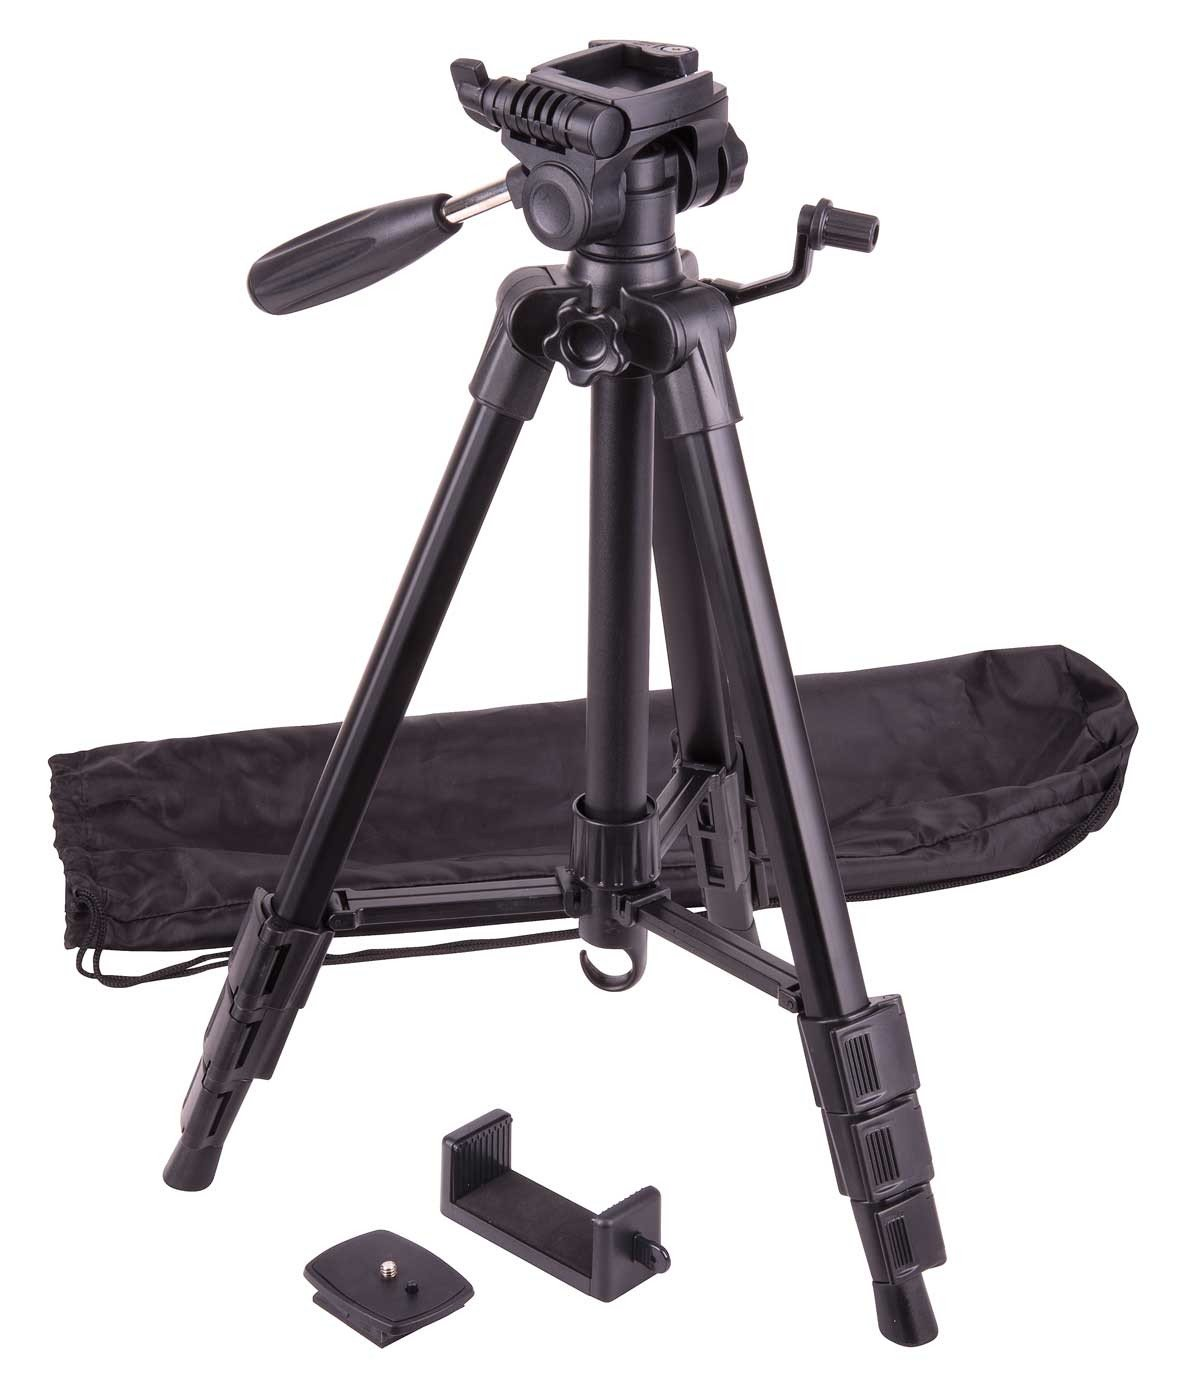 REED R1500 Lightweight Tripod with Instrument Adapter-Included